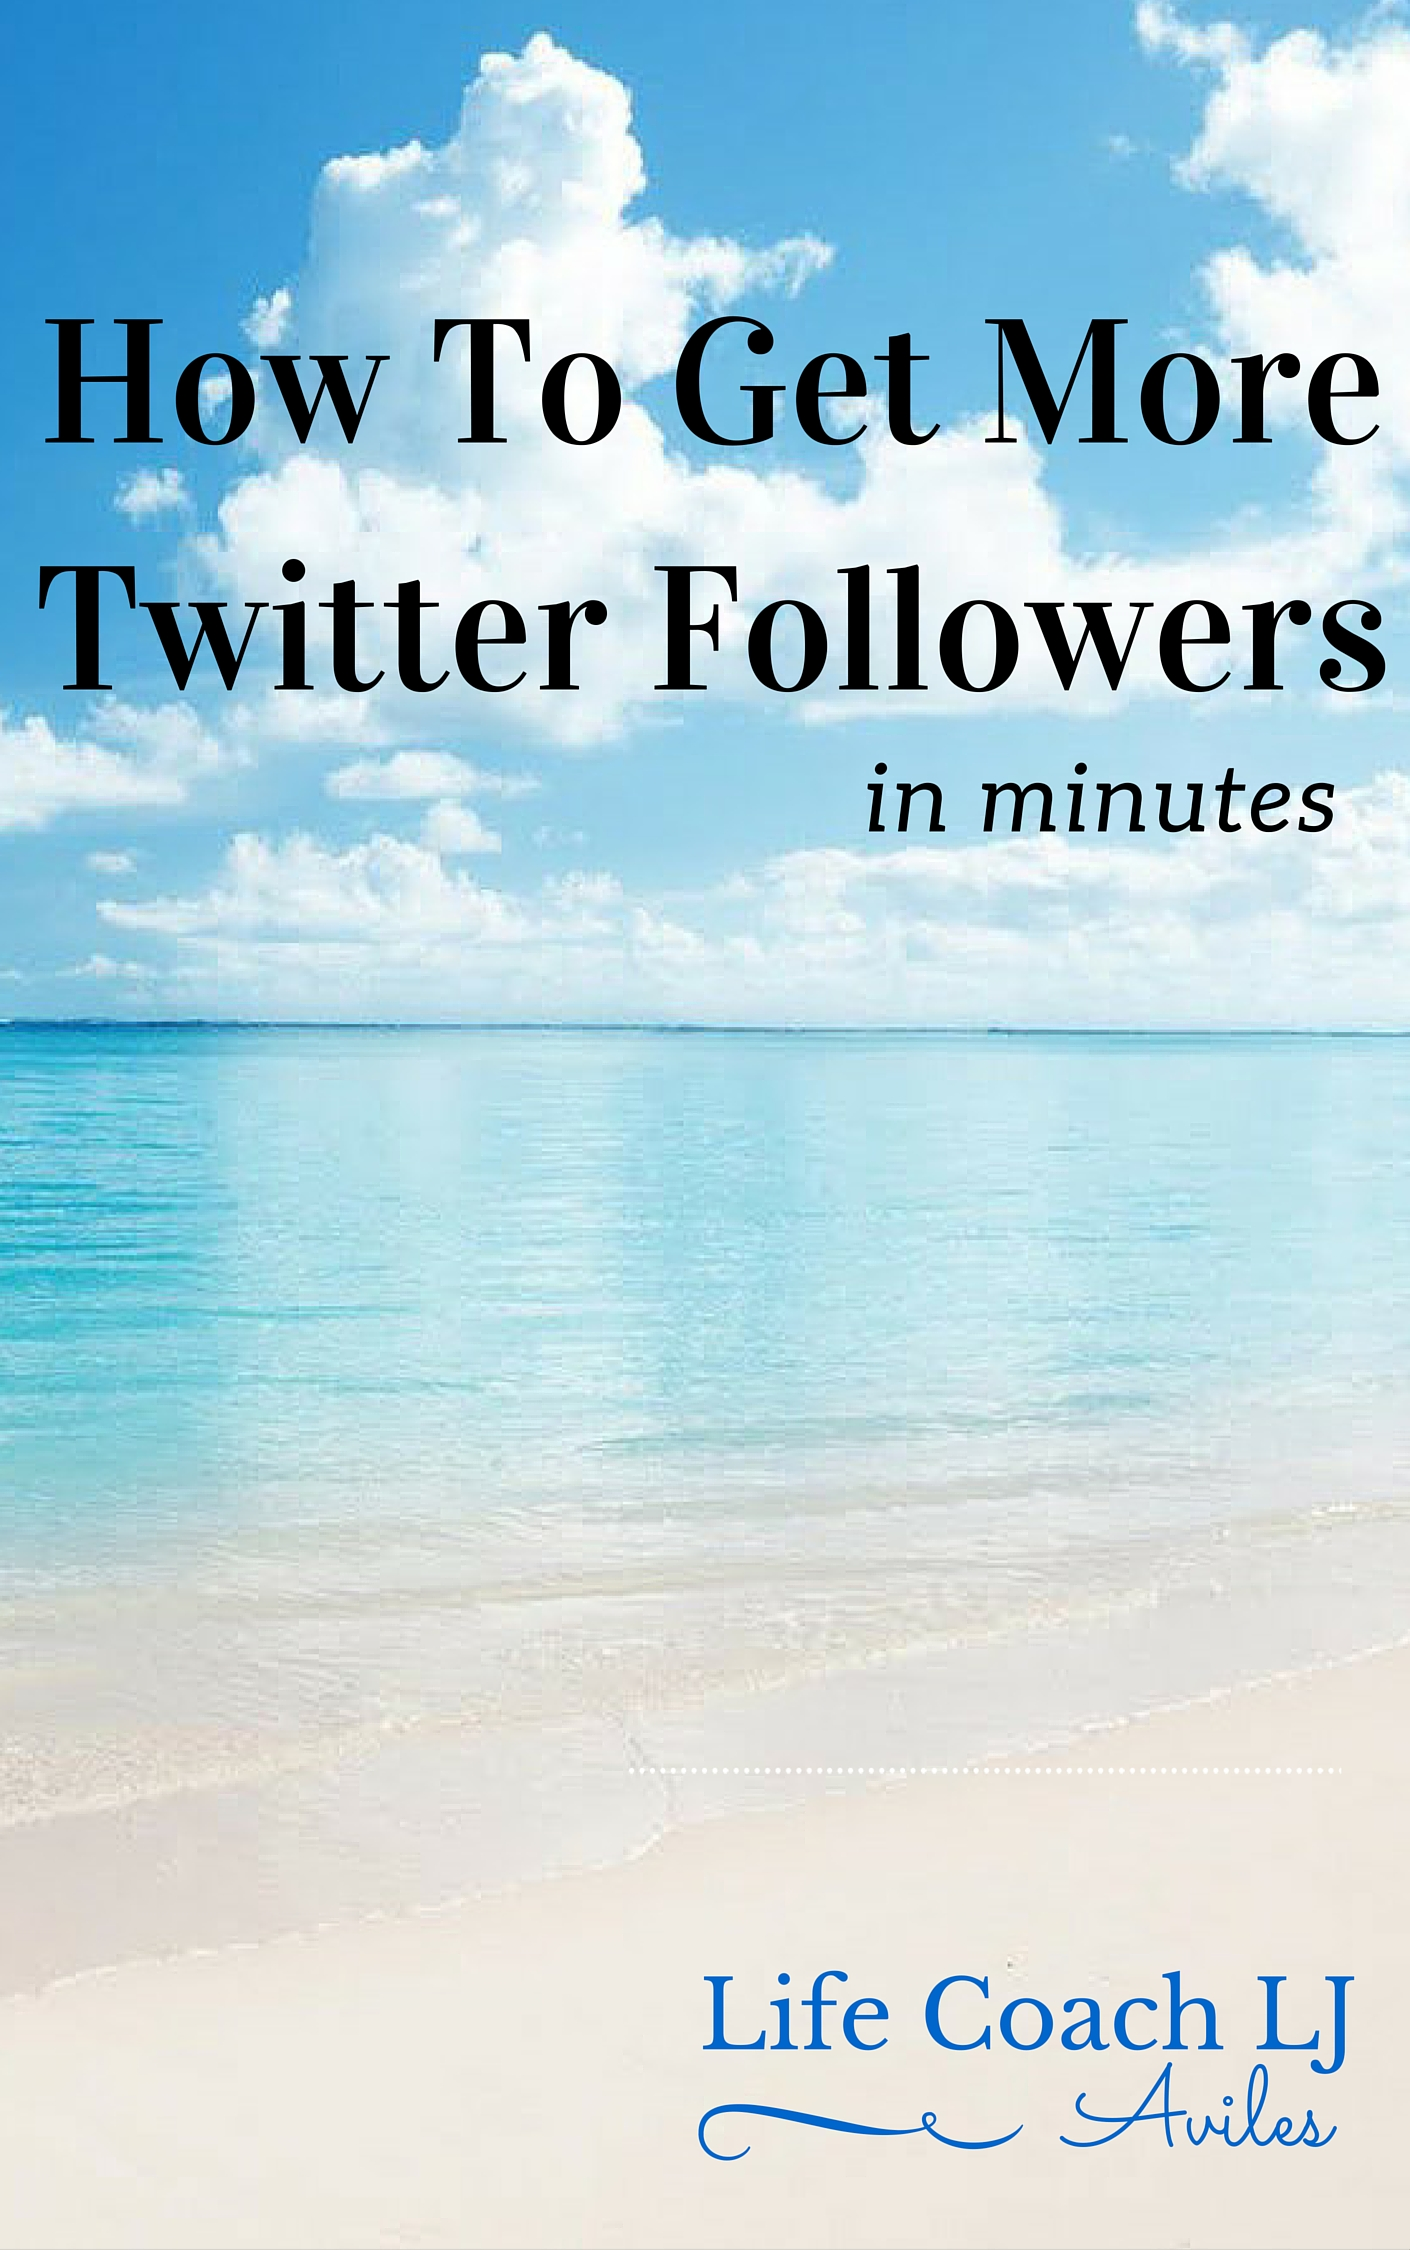 How-To-Get-More-Twitter-Followers-Ebook